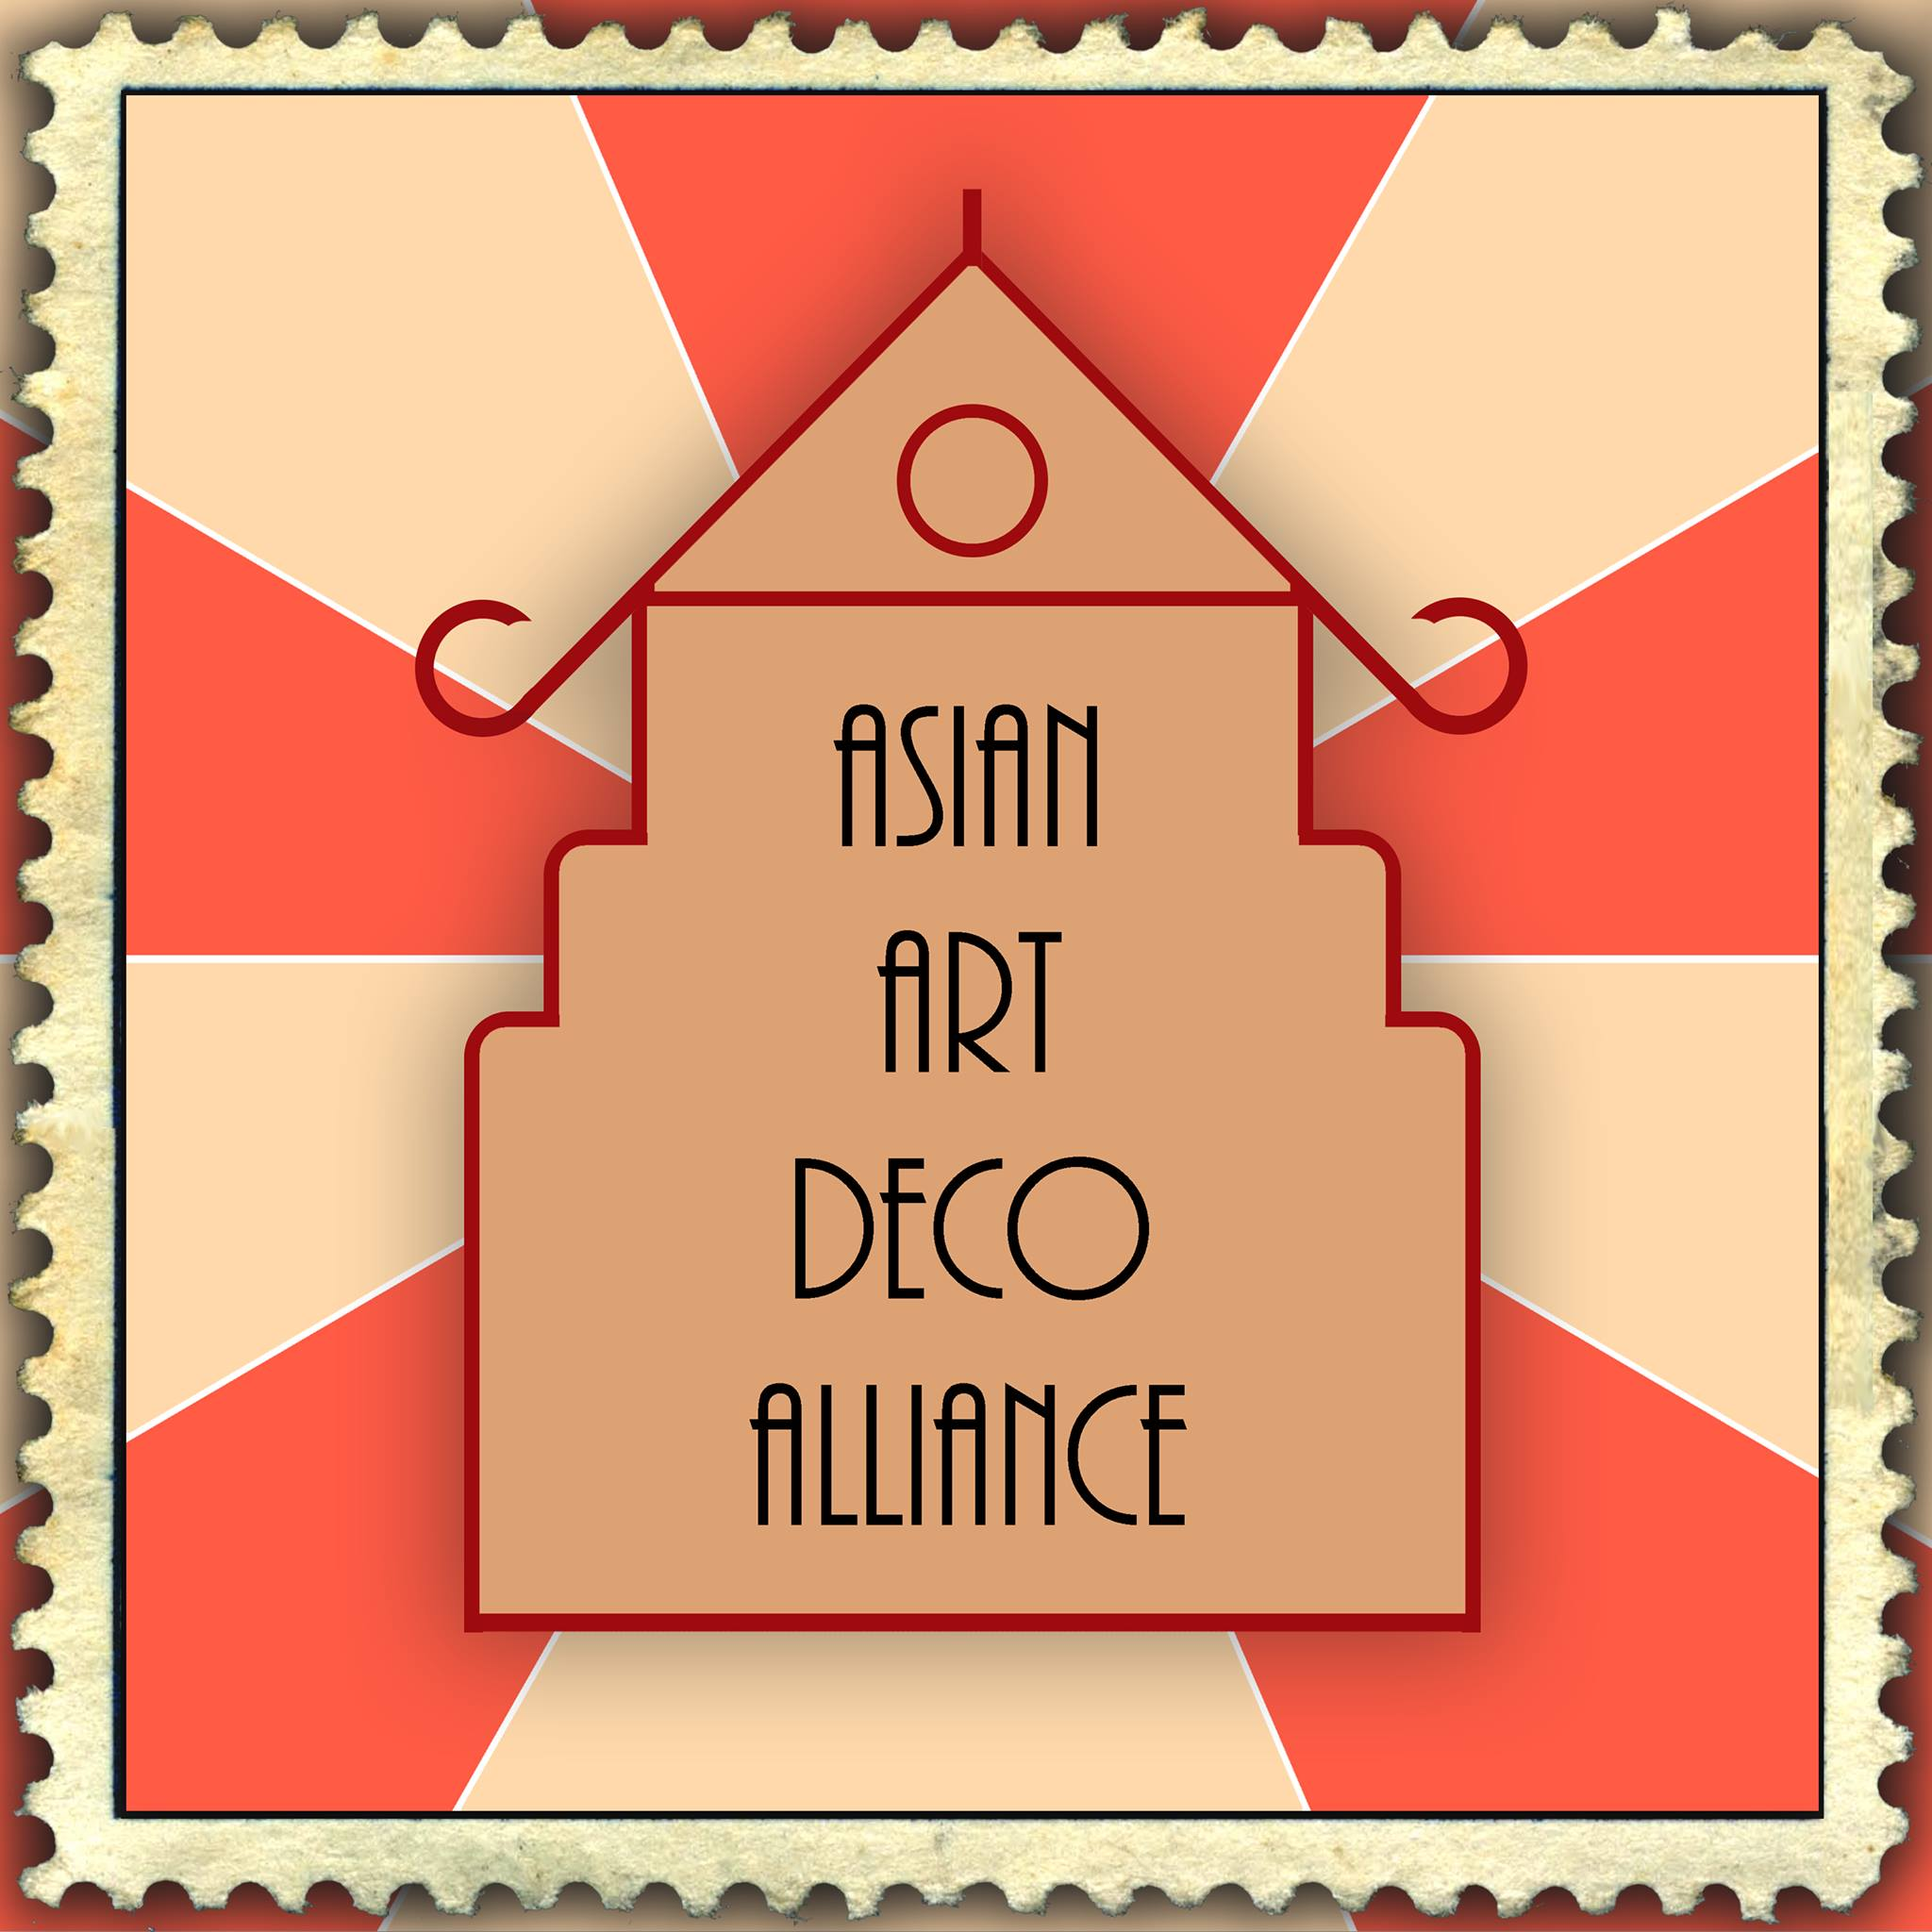 The Asian Art Deco Alliance